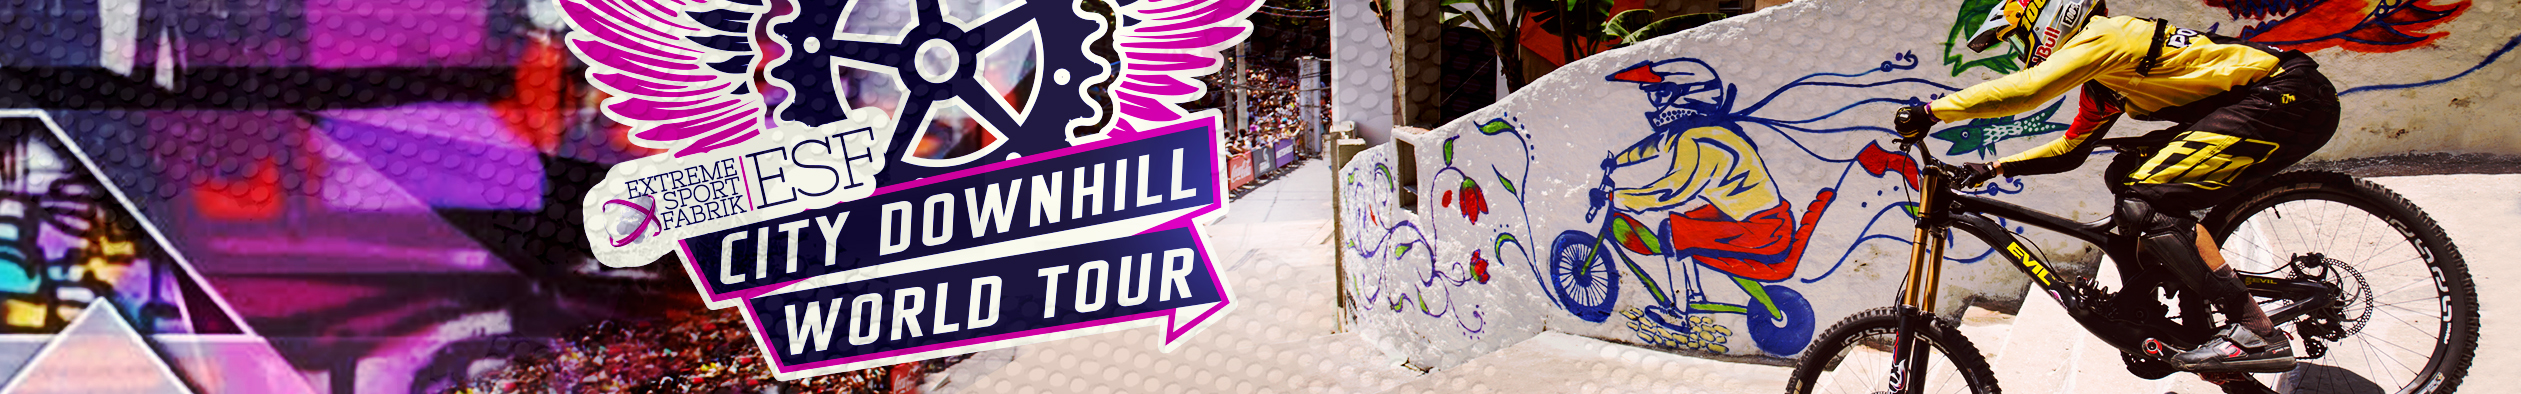 City Downhill World Tour 2015